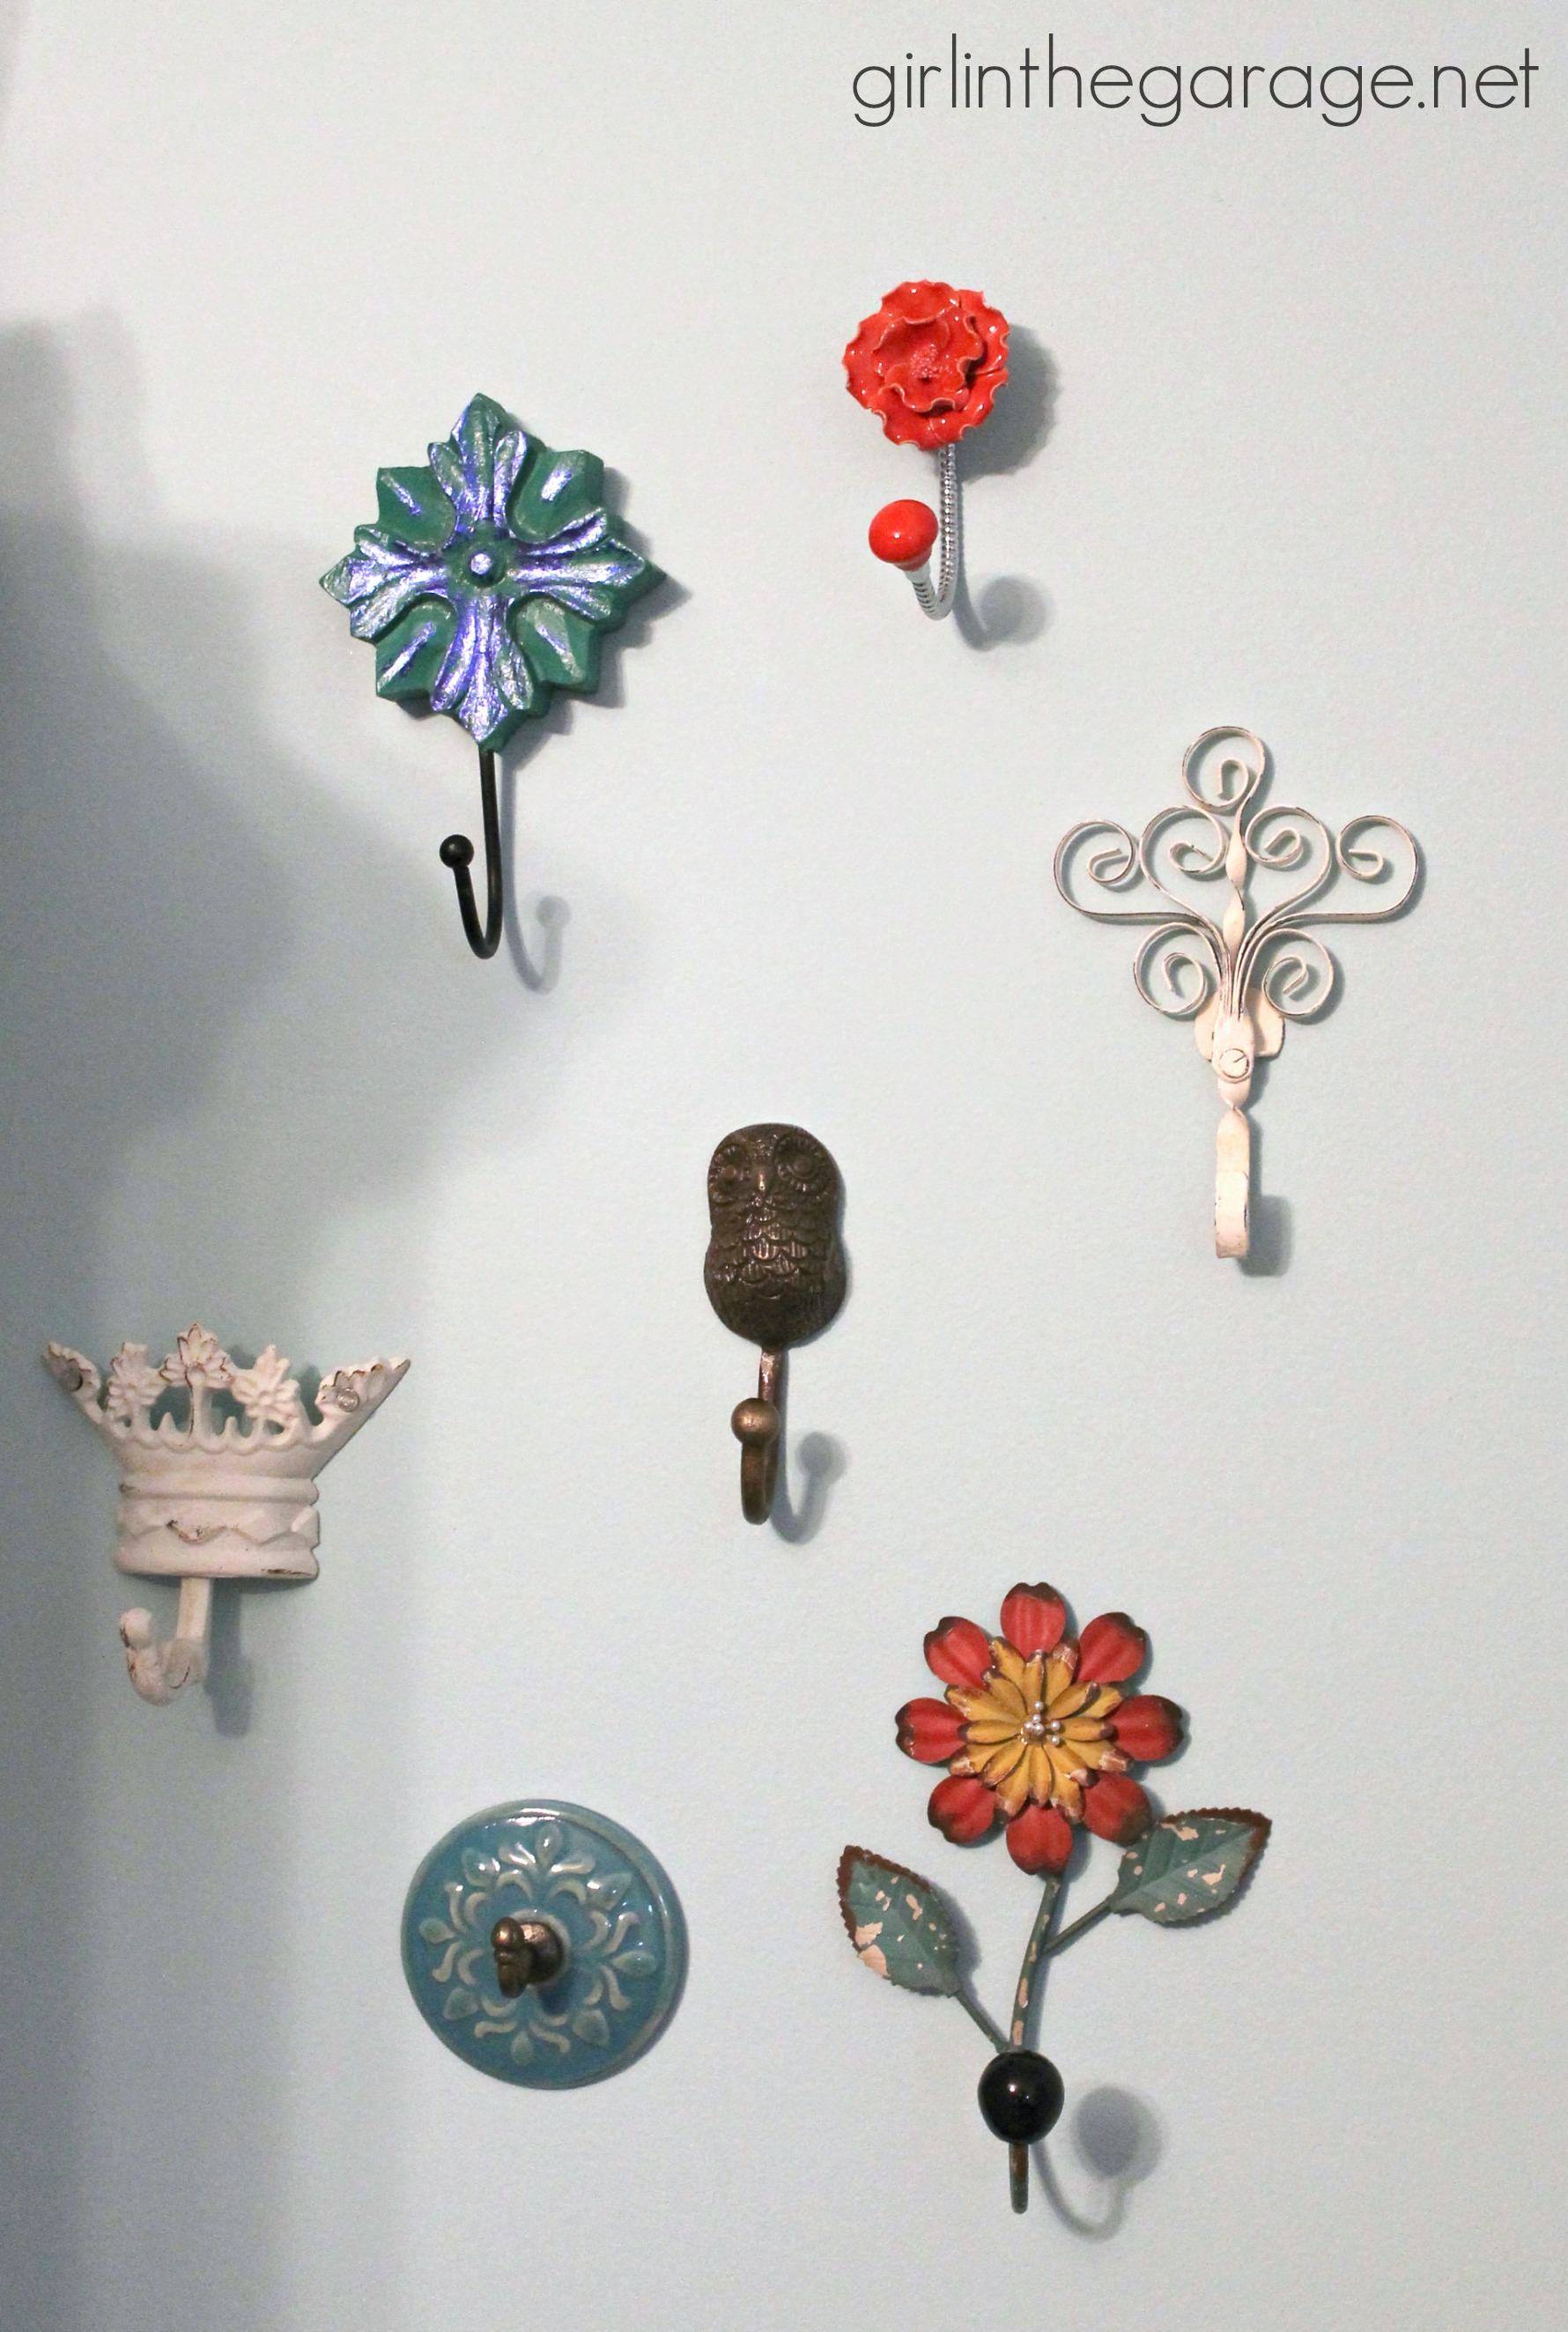 Pretty Wall Hooks As Jewelry Storage In The Bedroom I Inthegarage